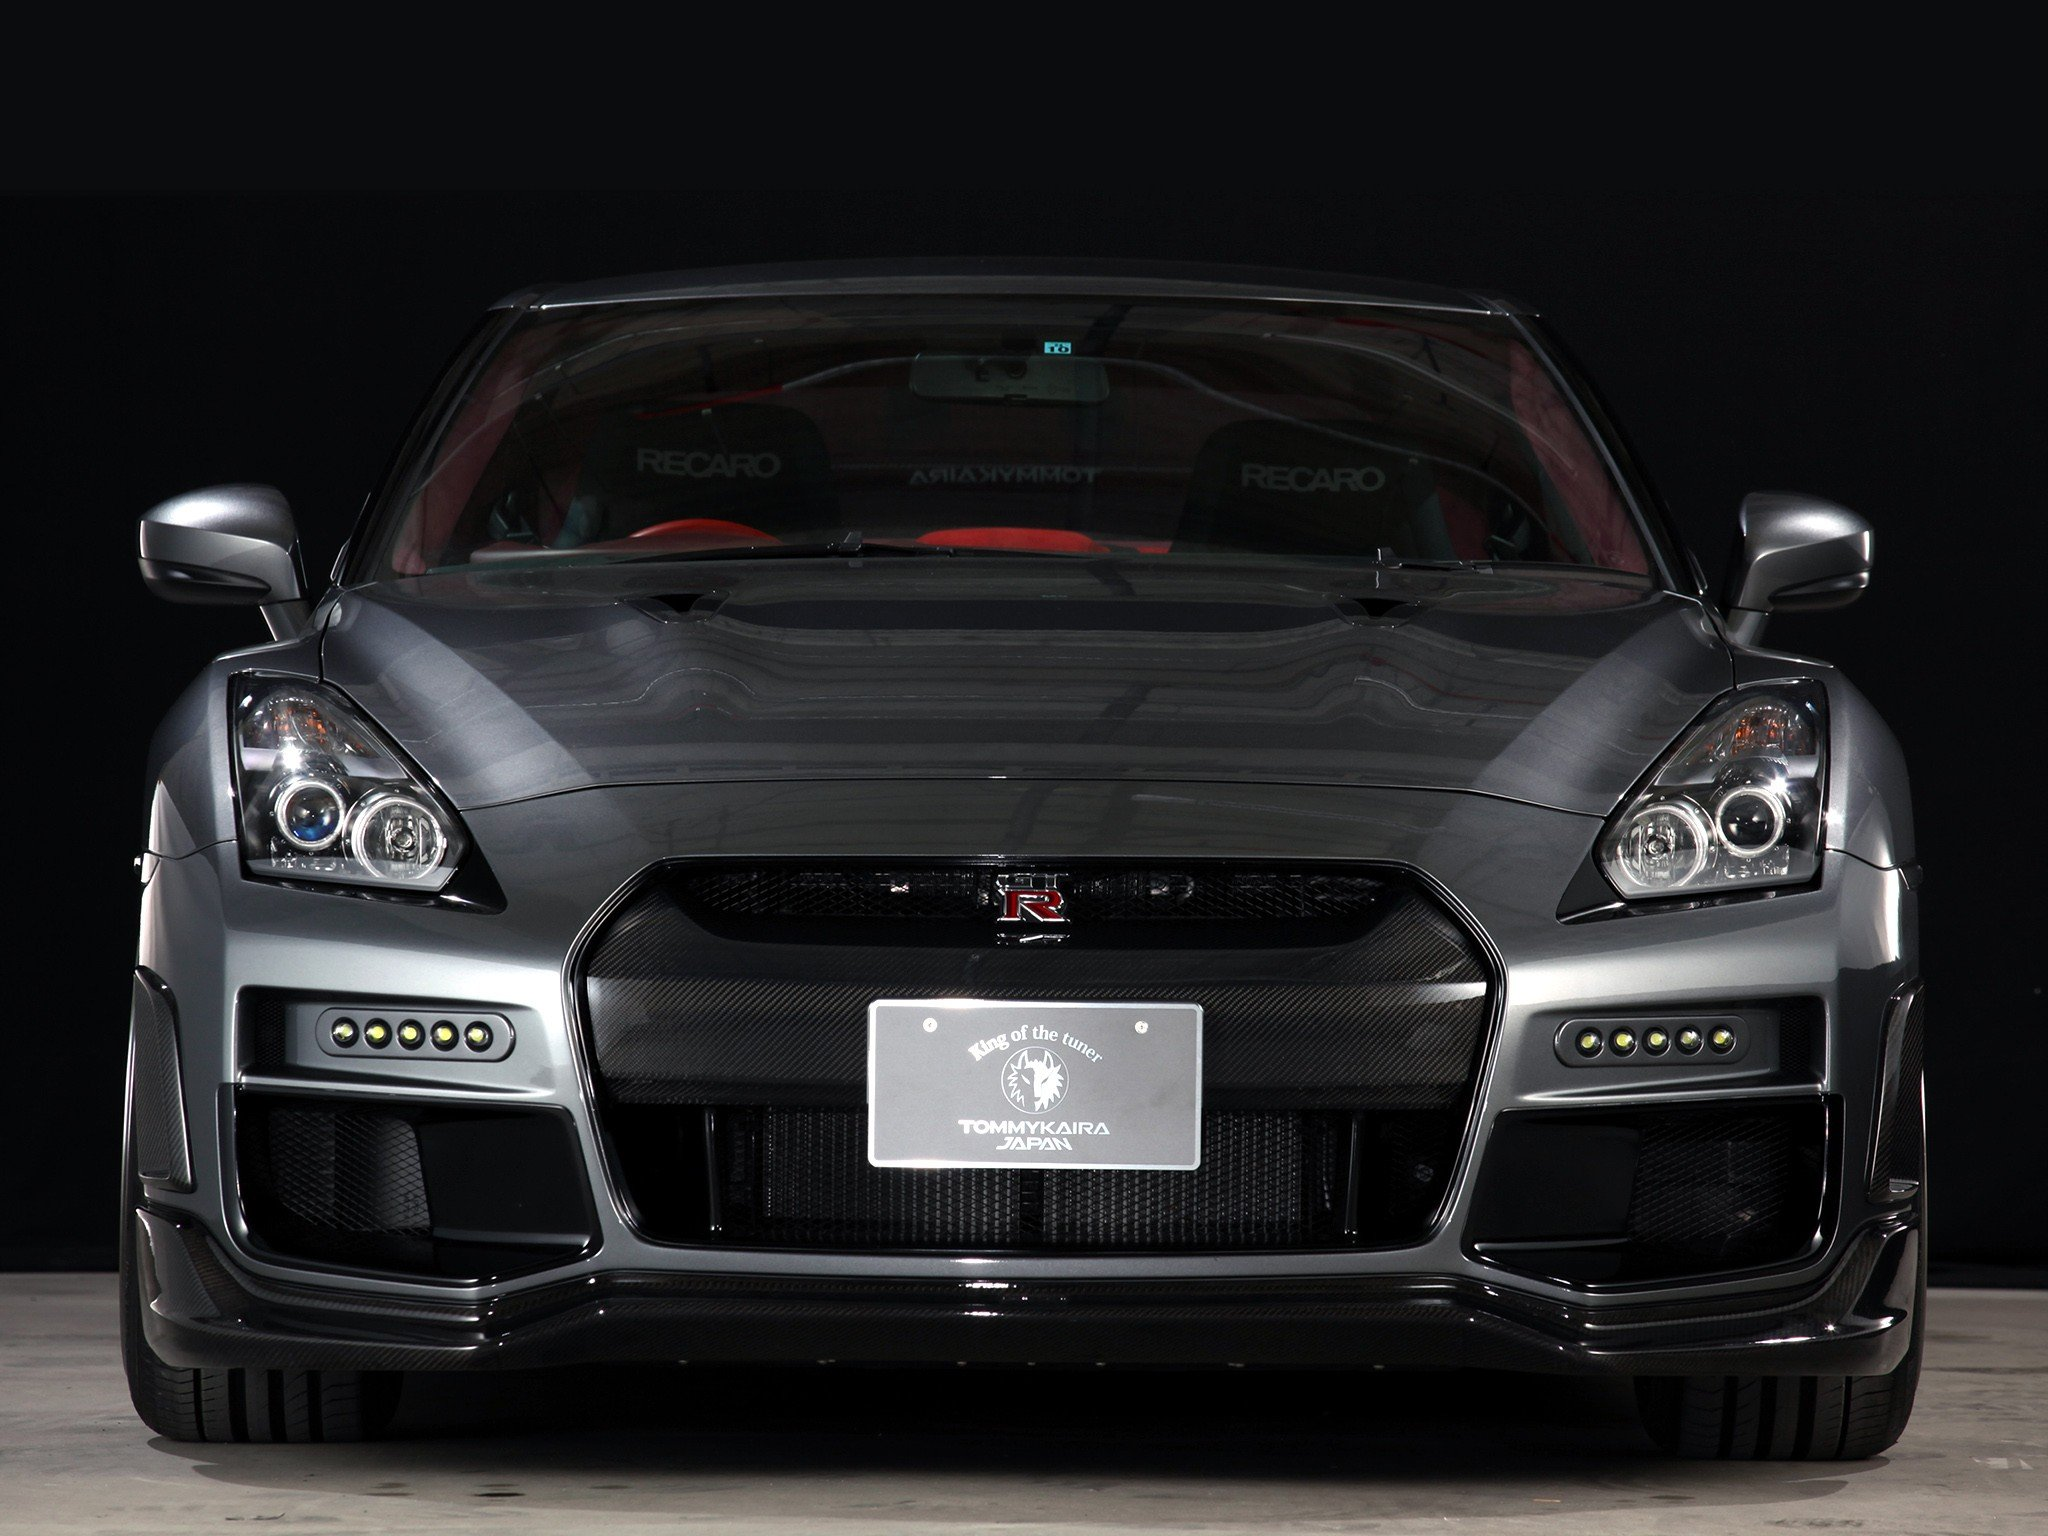 cars nissan tuning nissan skyline gt r nissan gt r r35 wallpaper 2048x1536 330286 wallpaperup. Black Bedroom Furniture Sets. Home Design Ideas